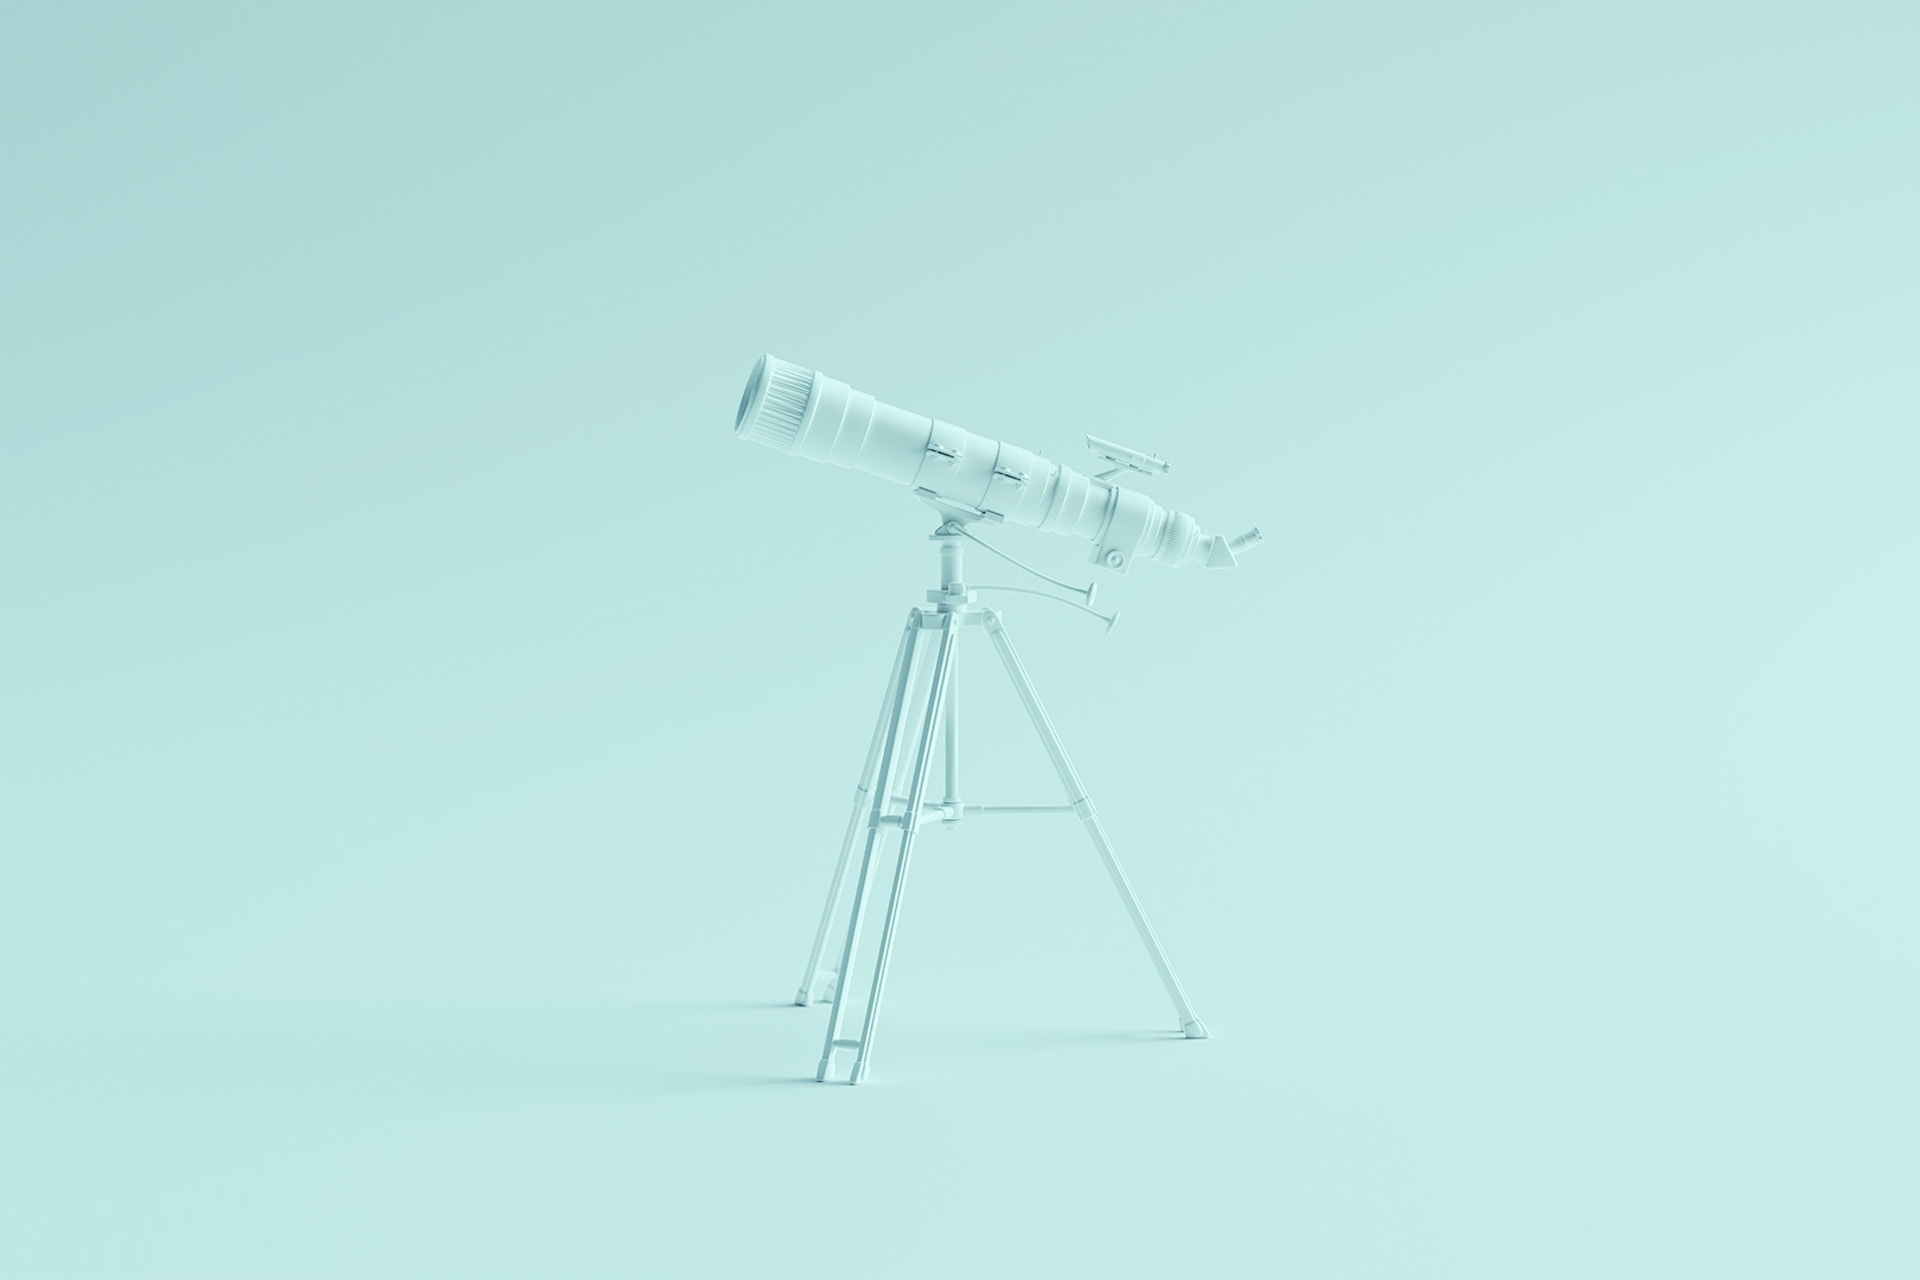 A large telescope set against a light teal backdrop. The telescope is a visual metaphor for the process of monitoring brand mentions on the internet, which is known as brand monitoring.